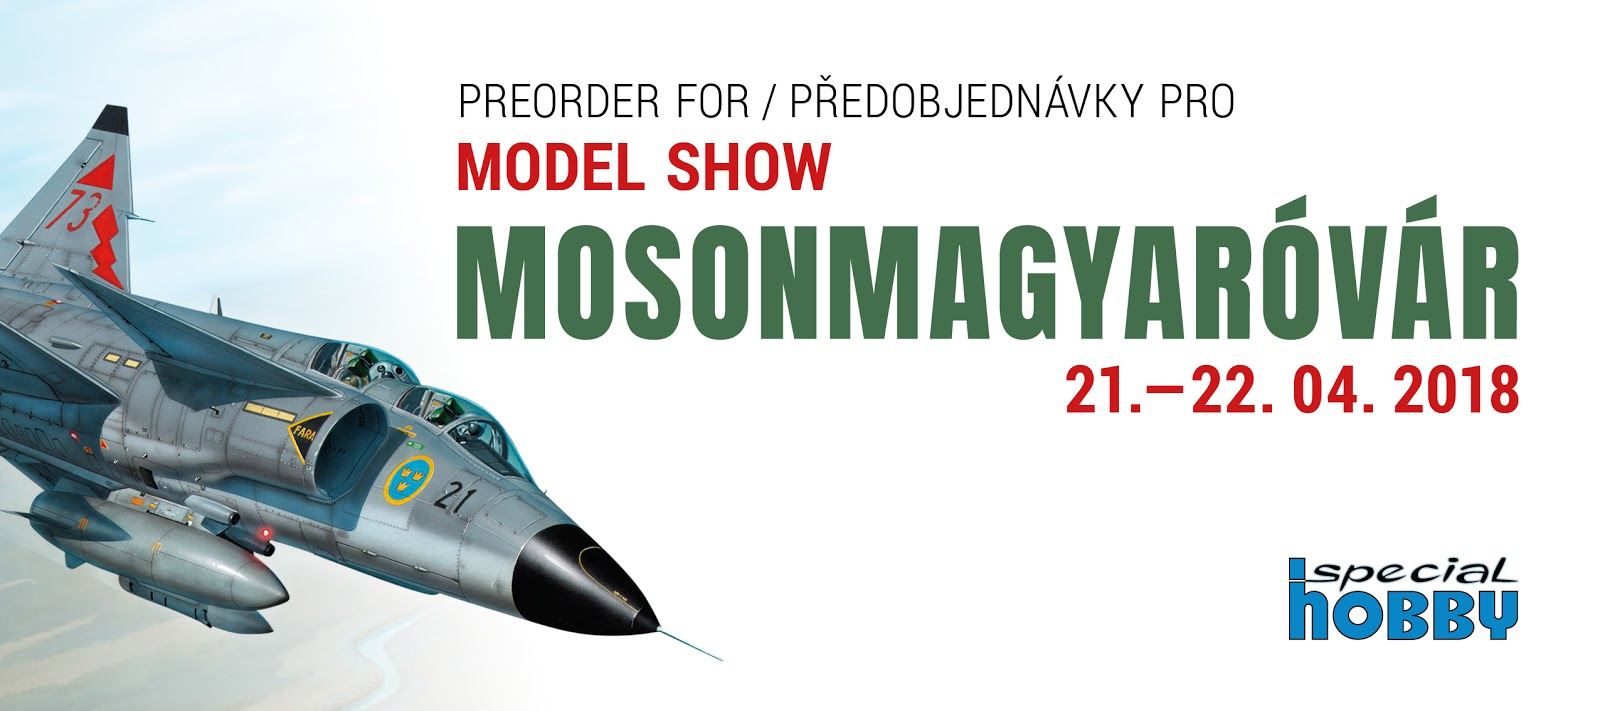 https://www.specialhobby.eu/predobjednavky-na-akci-mosonmagyovar-22th-international-model-show/